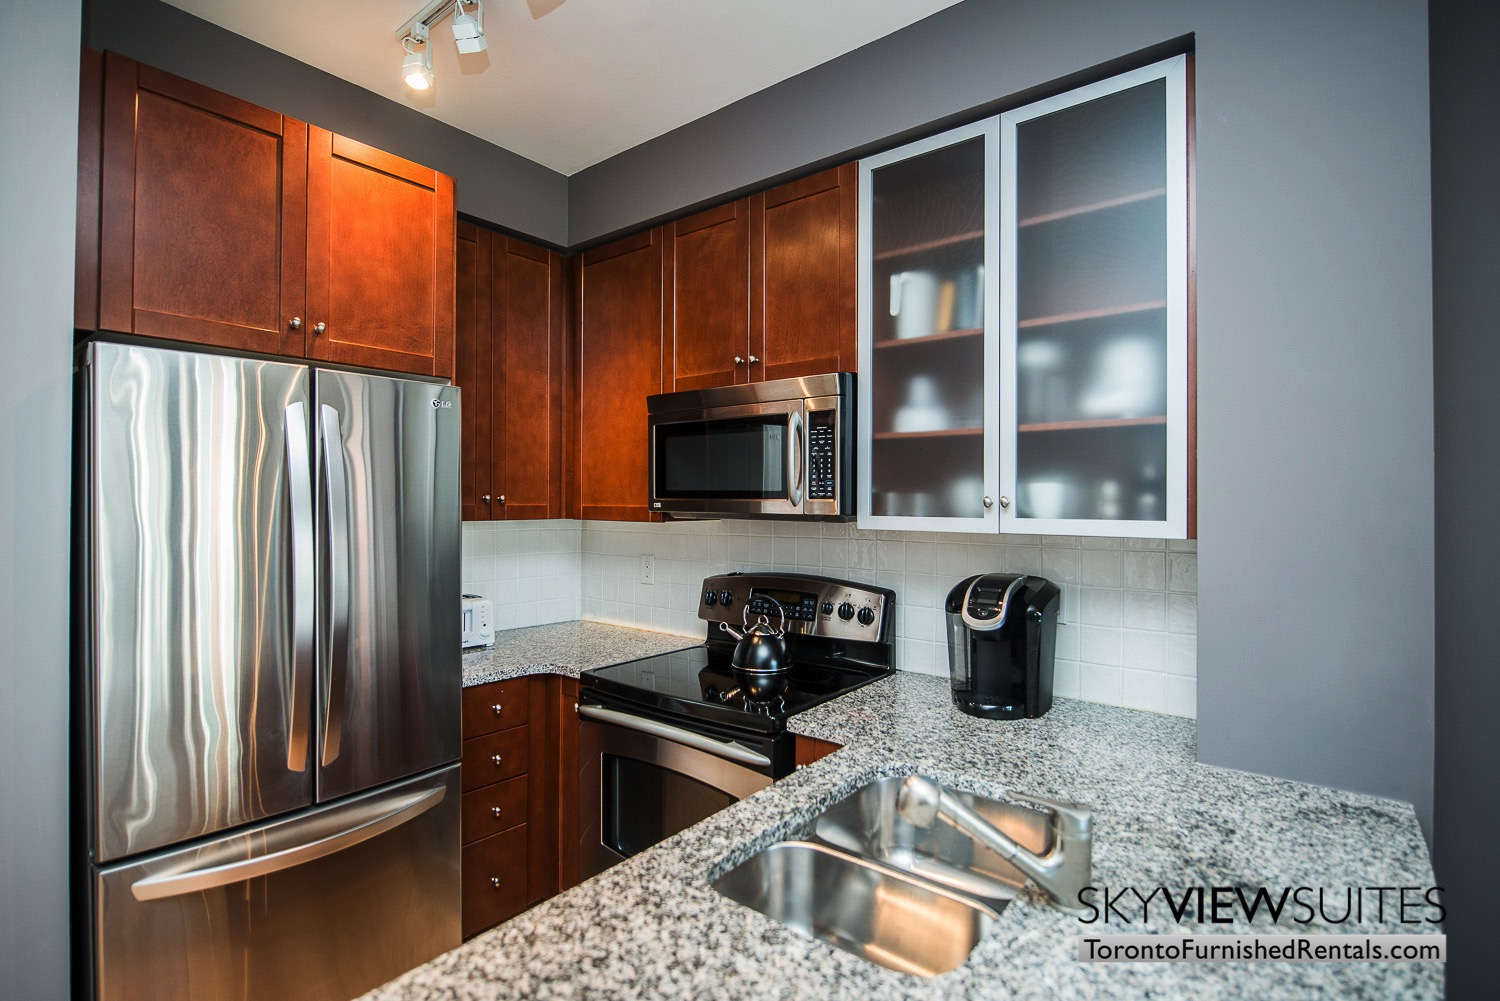 corporate rentals Yorkville toronto kitchen and kettle